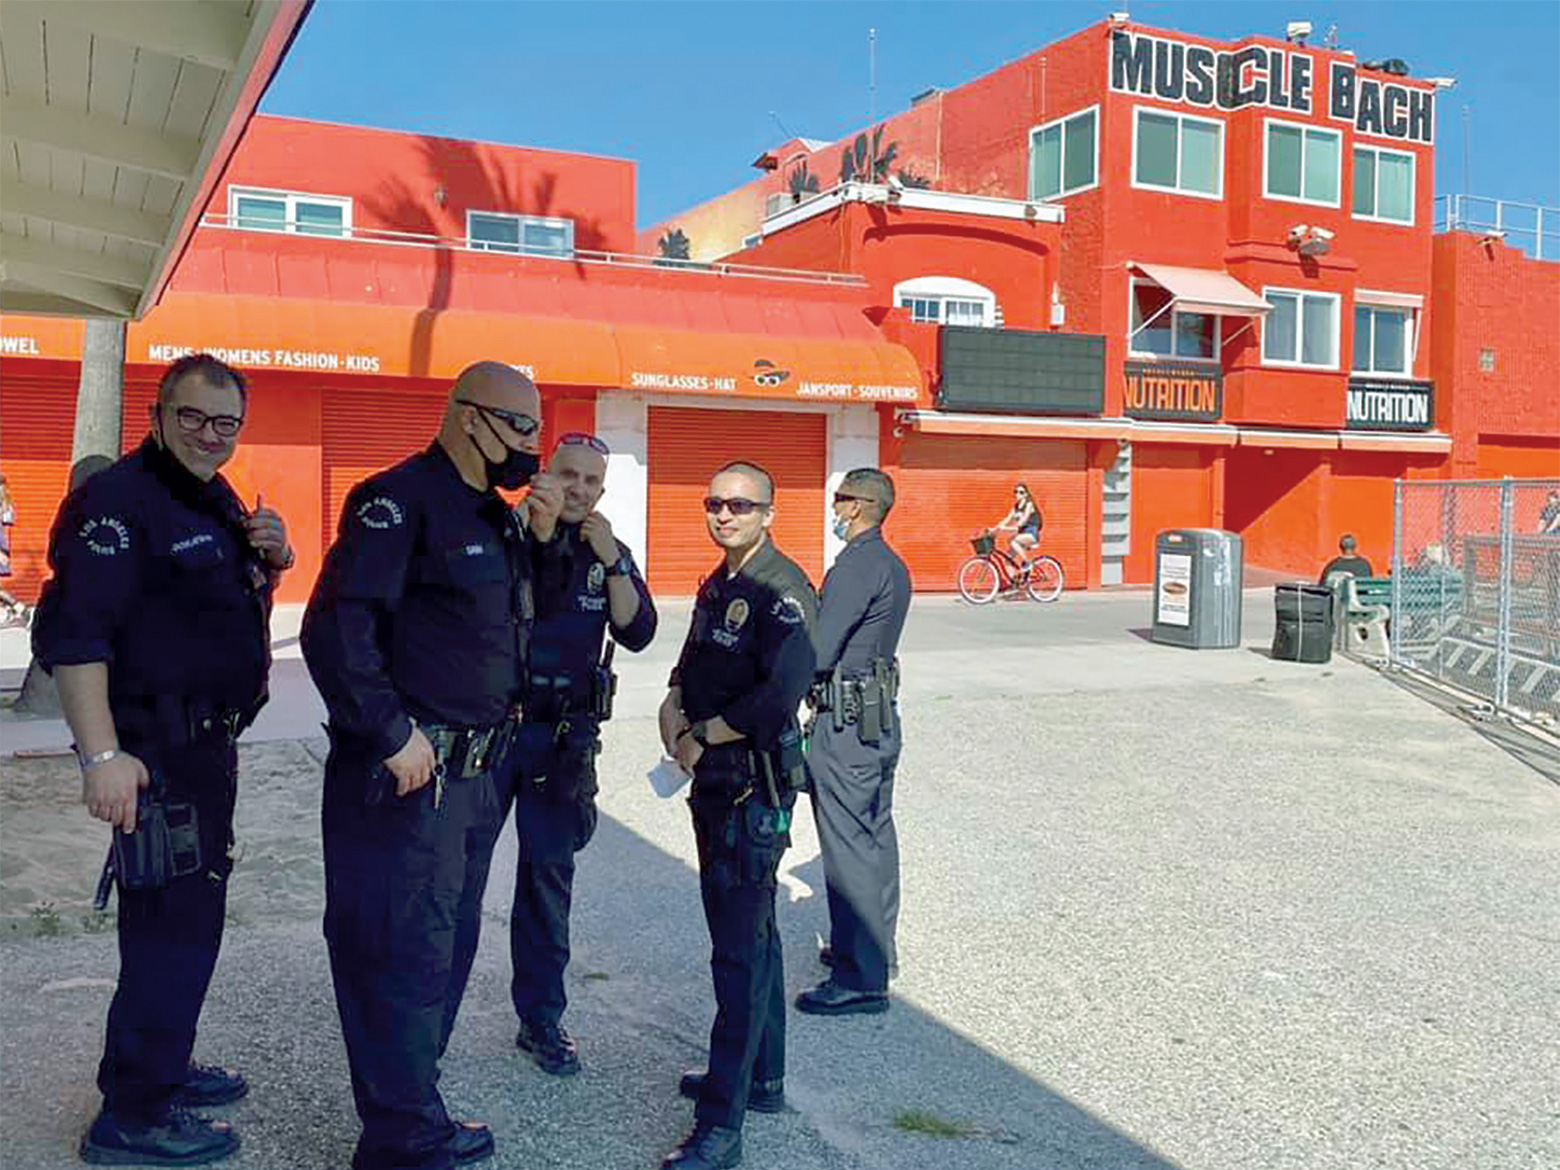 lapd-reserves-go-above-and-beyond-during-covid-19-36-venice-beach-detail-alt